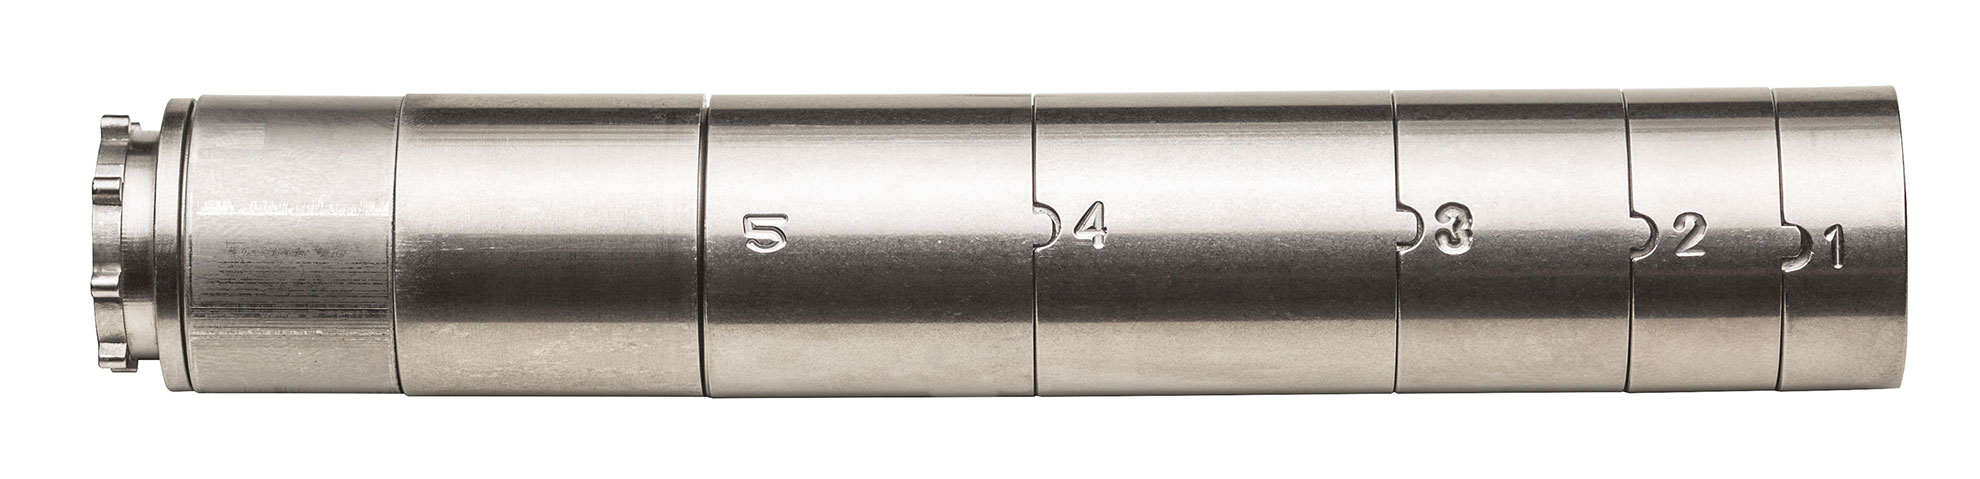 SureFire SF RYDER 22-S numbers indexed and baffled